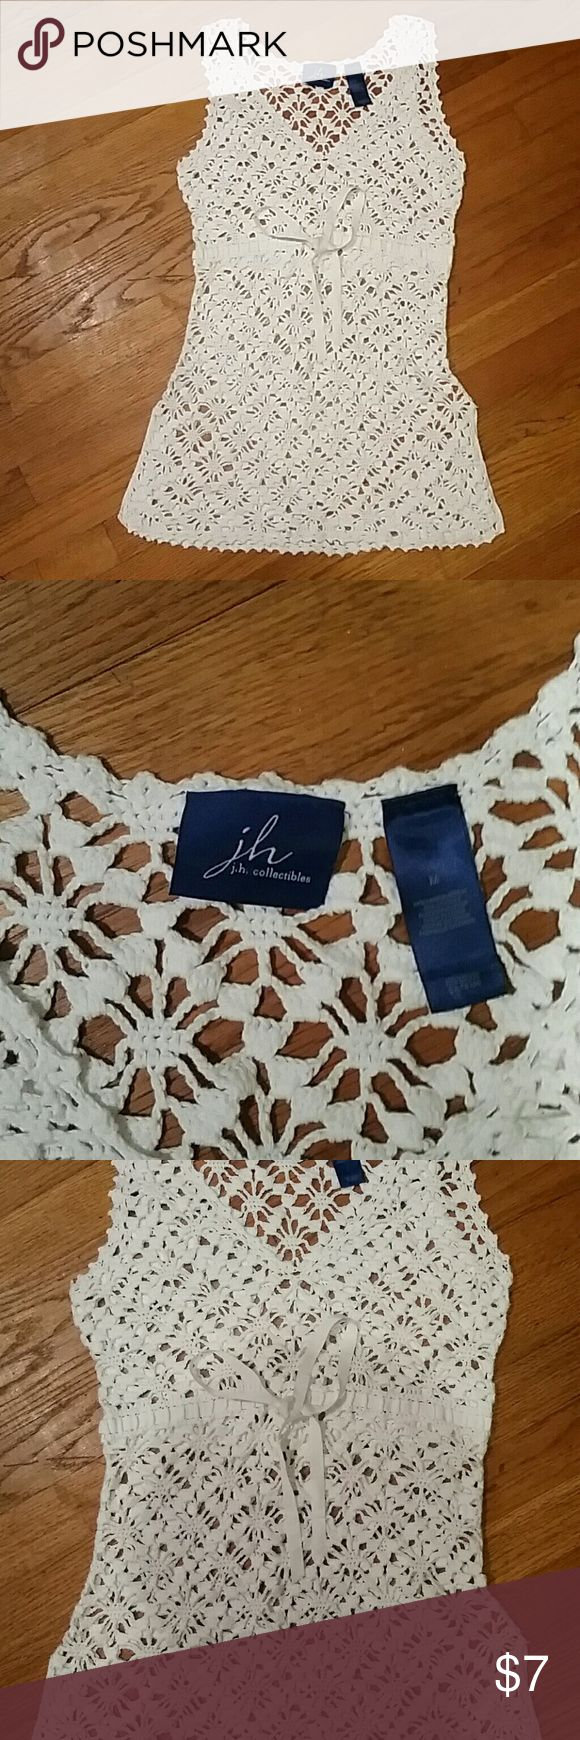 Crochet Mini Dress Size medium, white Crochet Mini Dress, j. h. Collection, soooo adorable, white draw string. Like new! j. h. collection Dresses Mini